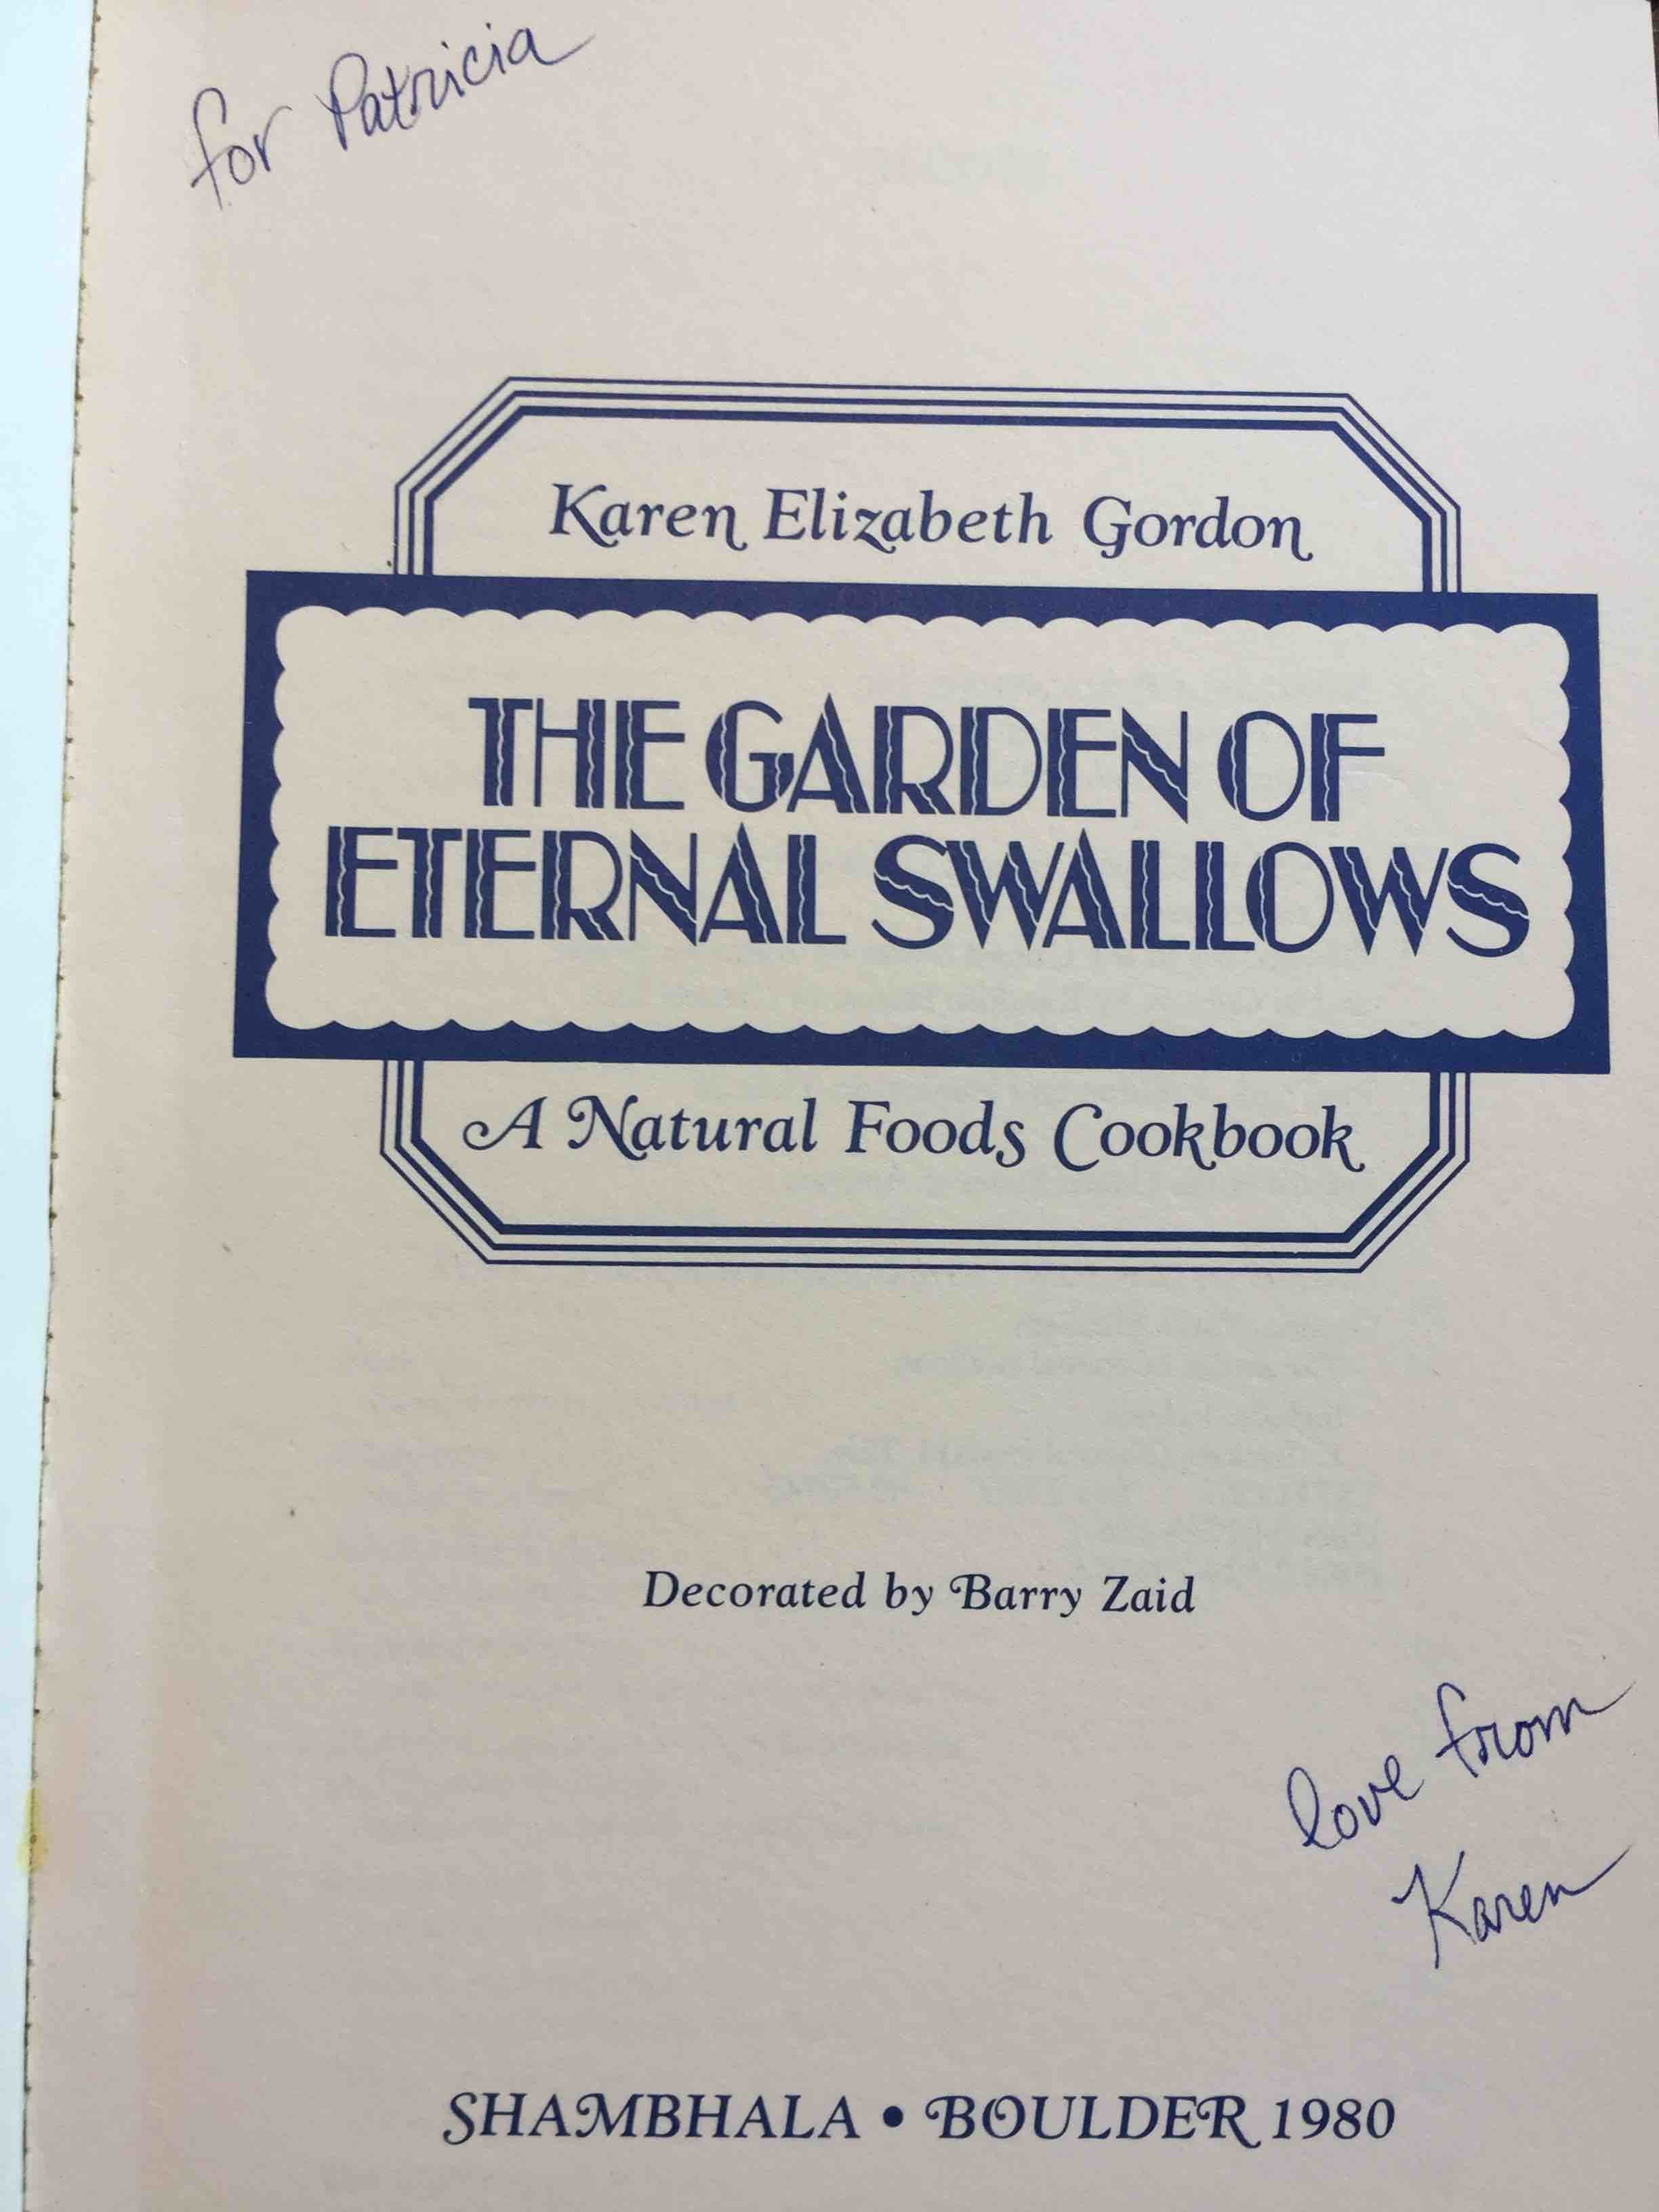 Book cover picture of Gordon, Karen Elizabeth. THE GARDEN OF ETERNAL SWALLOWS: A Natural Foods Cookbook. Boulder, CO: Shambhala,  1980.